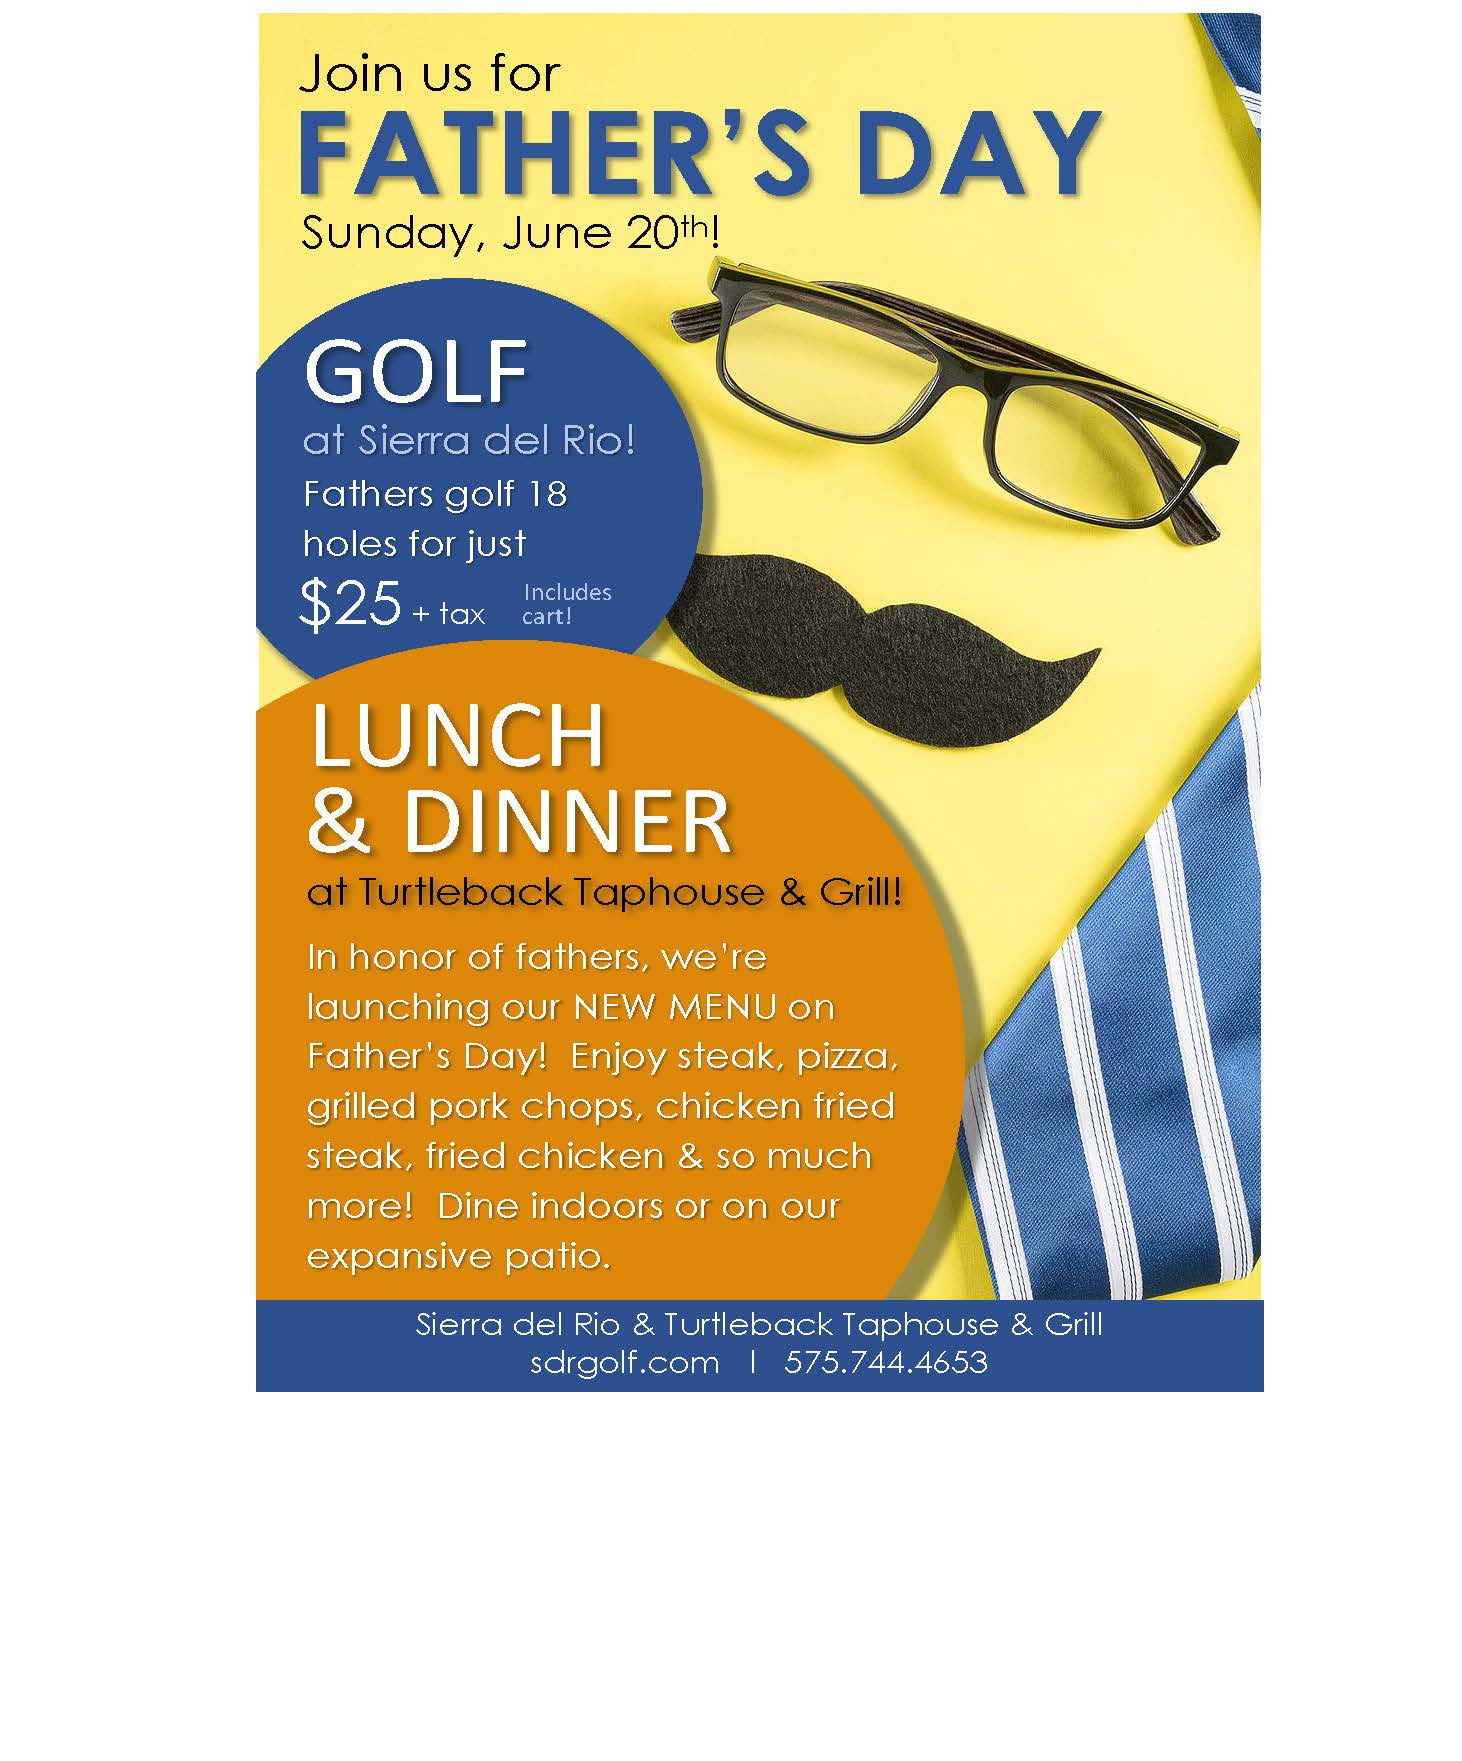 FATHER'S DAY - GOLF & DINING at Sierra del Rio